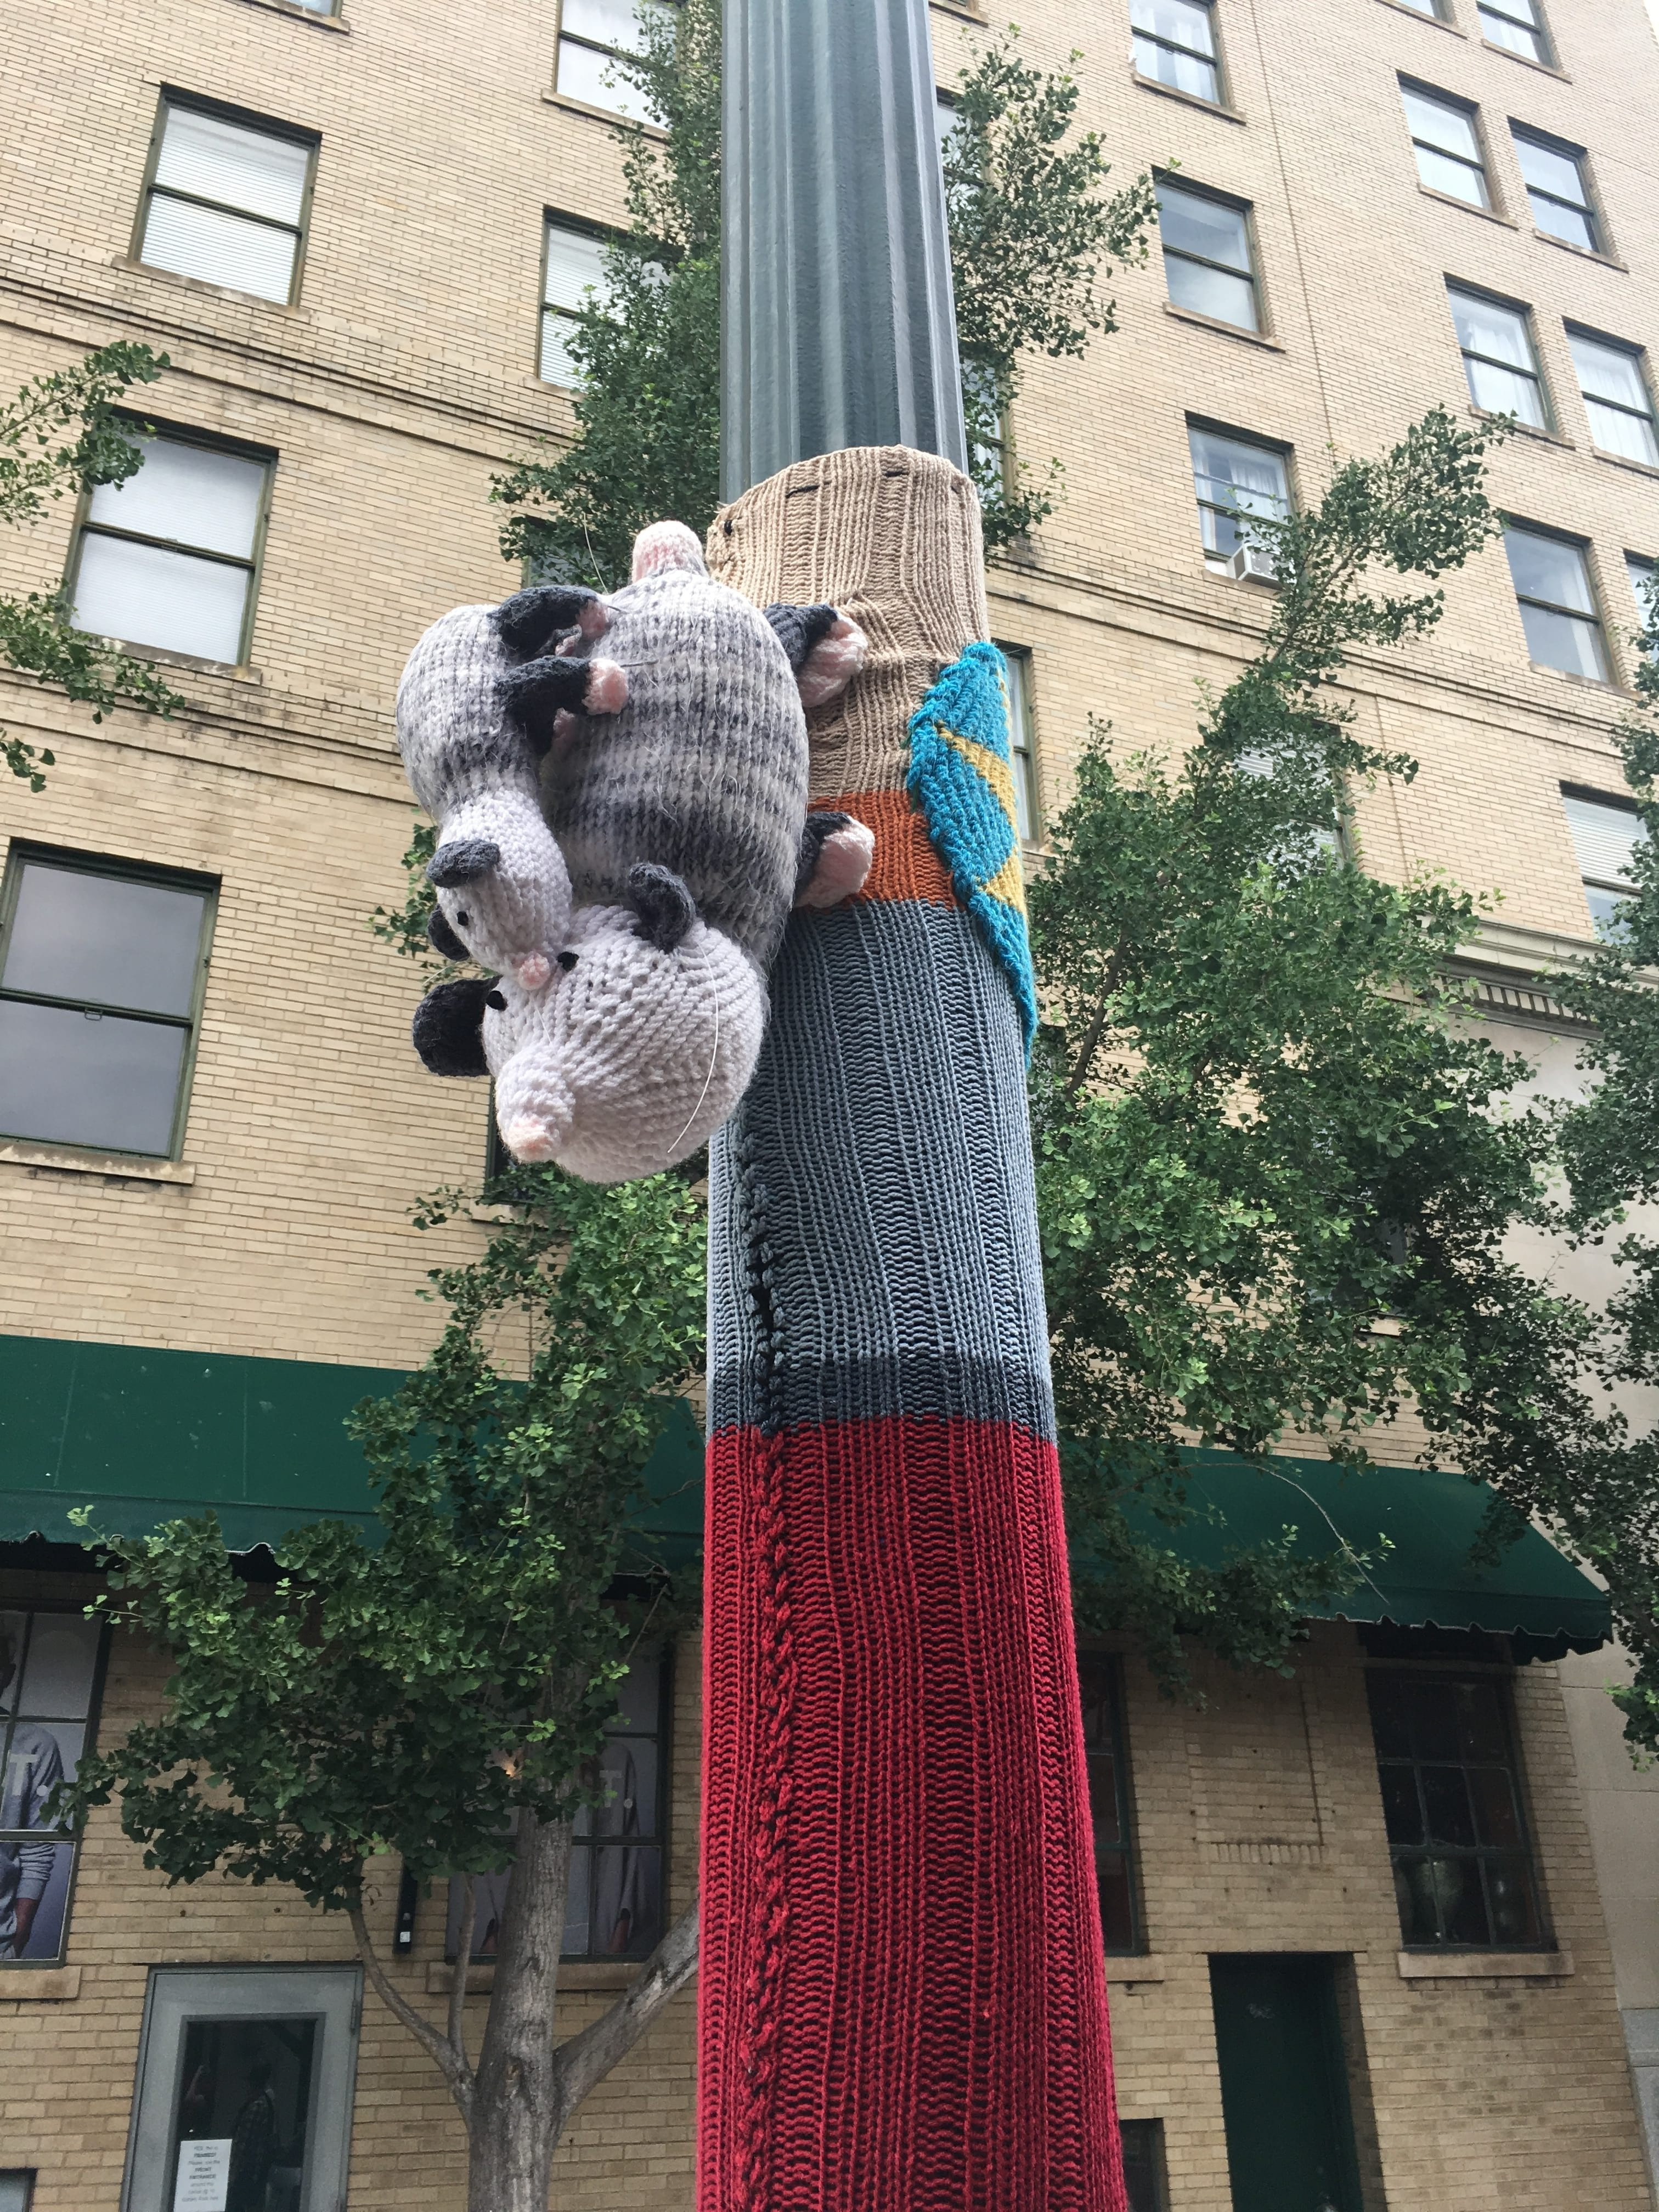 """Knitted and crocheted yarn wraps around a lamp post on a city street. A knitted pair of possums, a mother and a baby, are mounted on the lamp post as well. In the other photograph, a pink and red crocheted fabric has been wrapped around a lamp post. Stitched in the center of a large pink heart are the words, """"Go Local."""""""